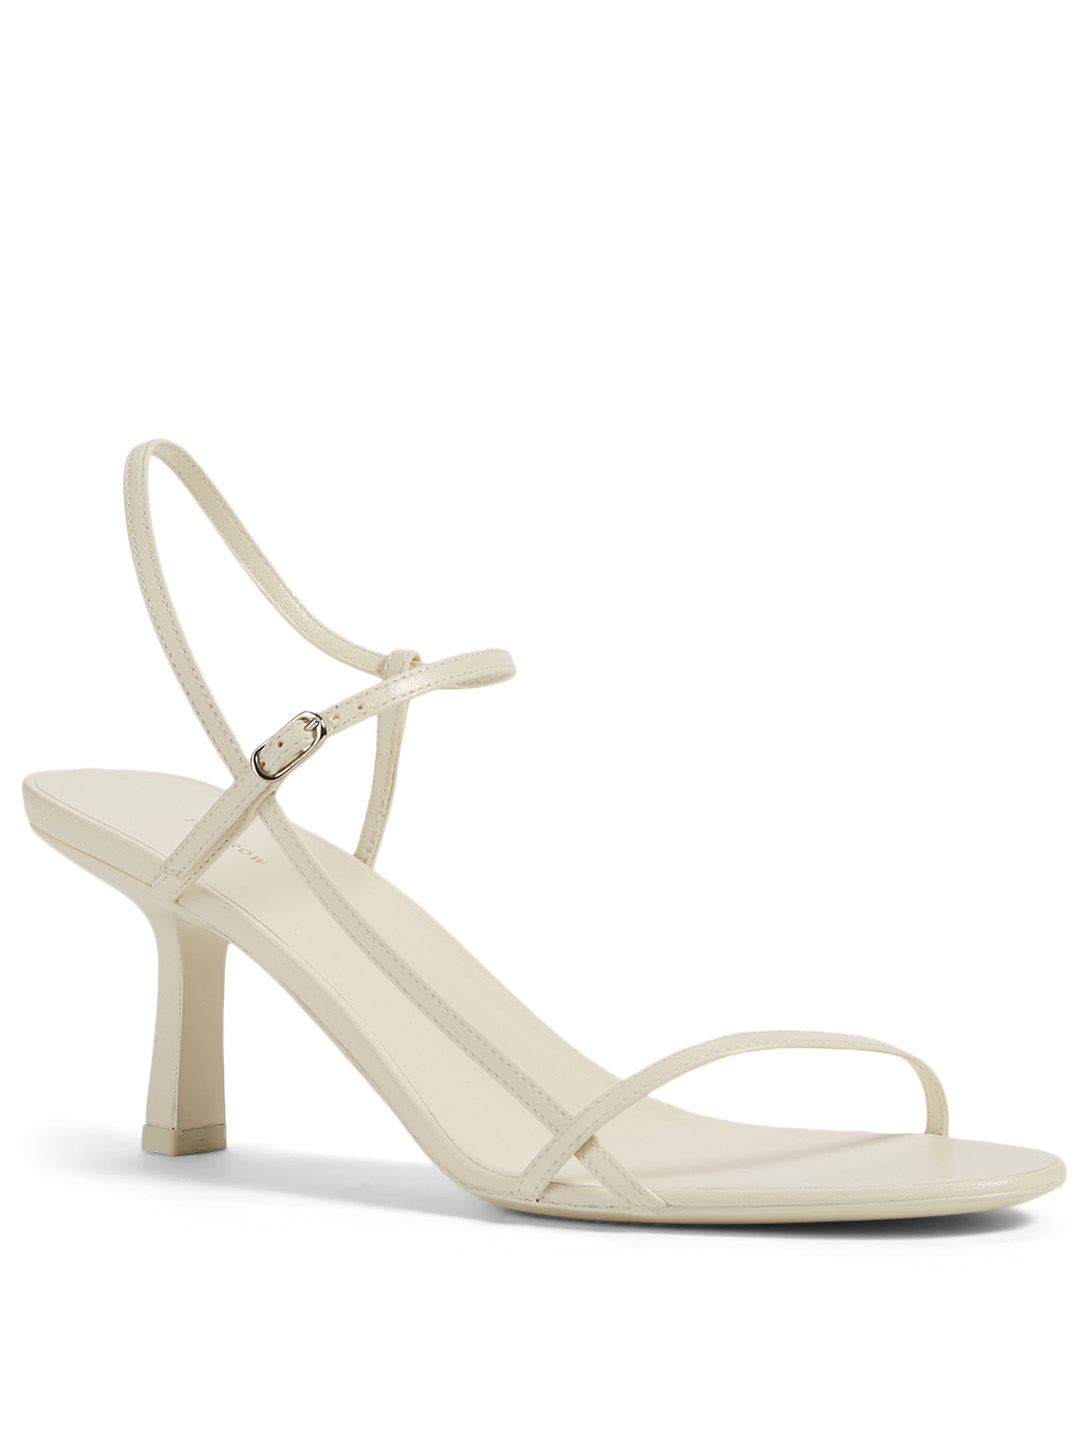 THE ROW Bare Leather Heeled Sandals Women's White